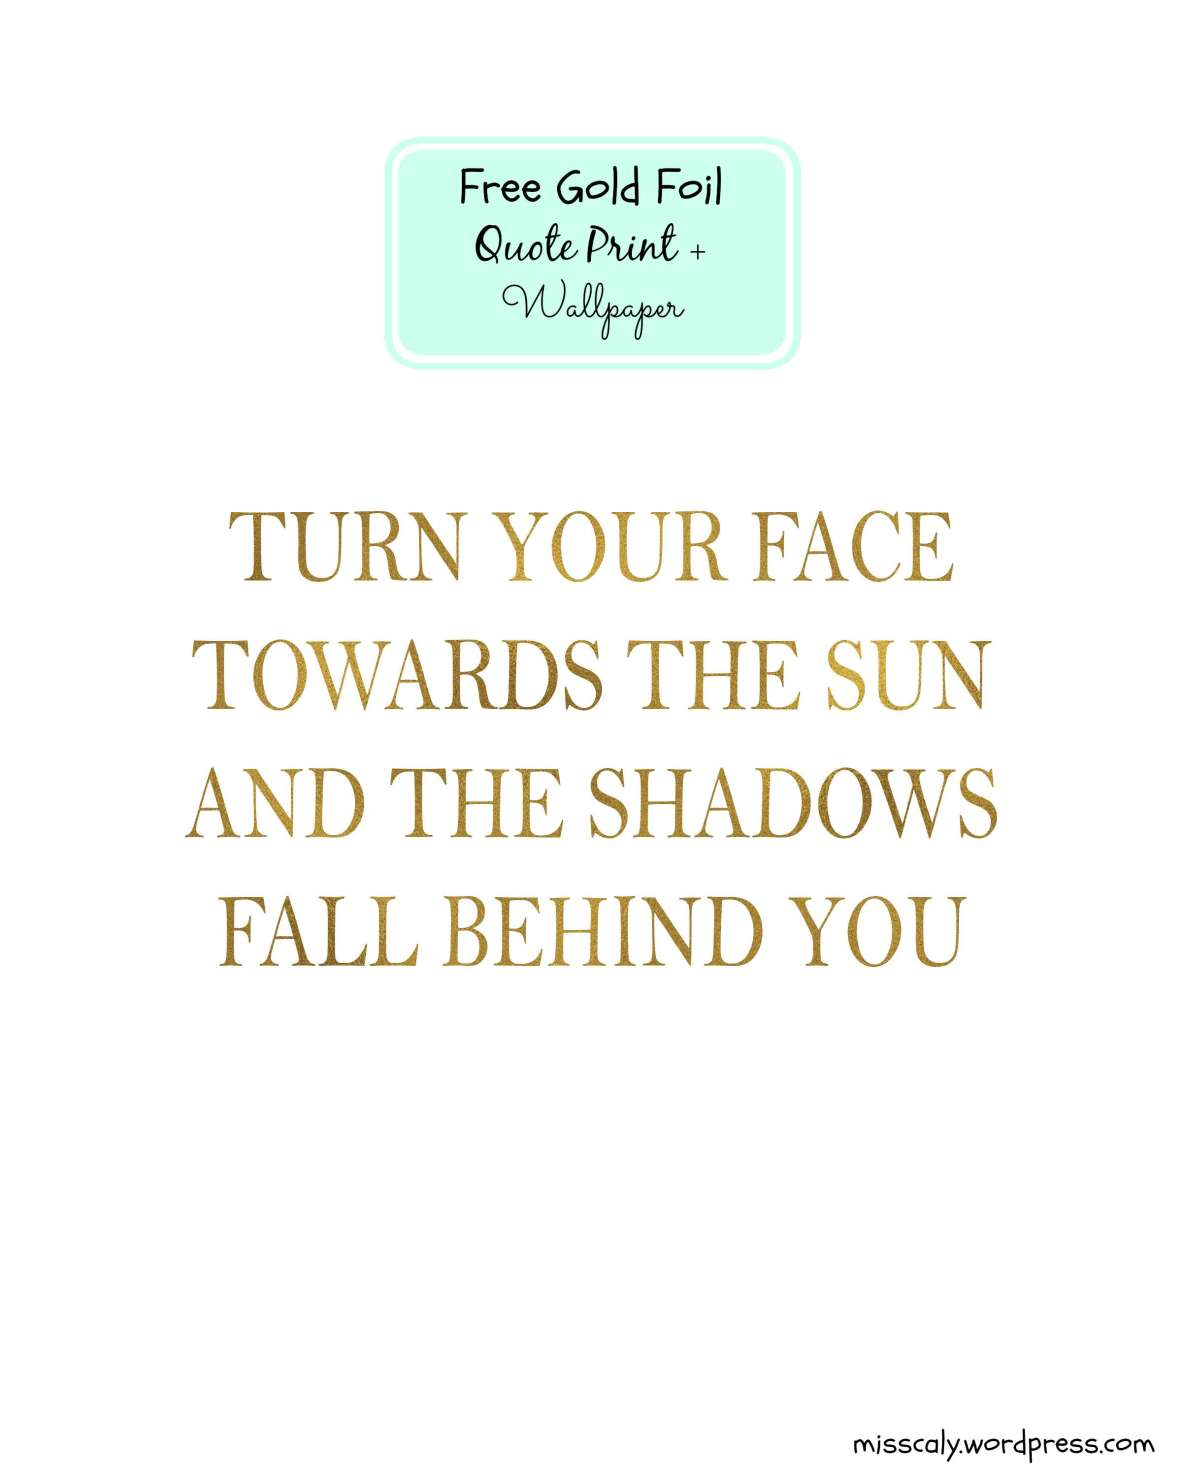 gold foil quote print front